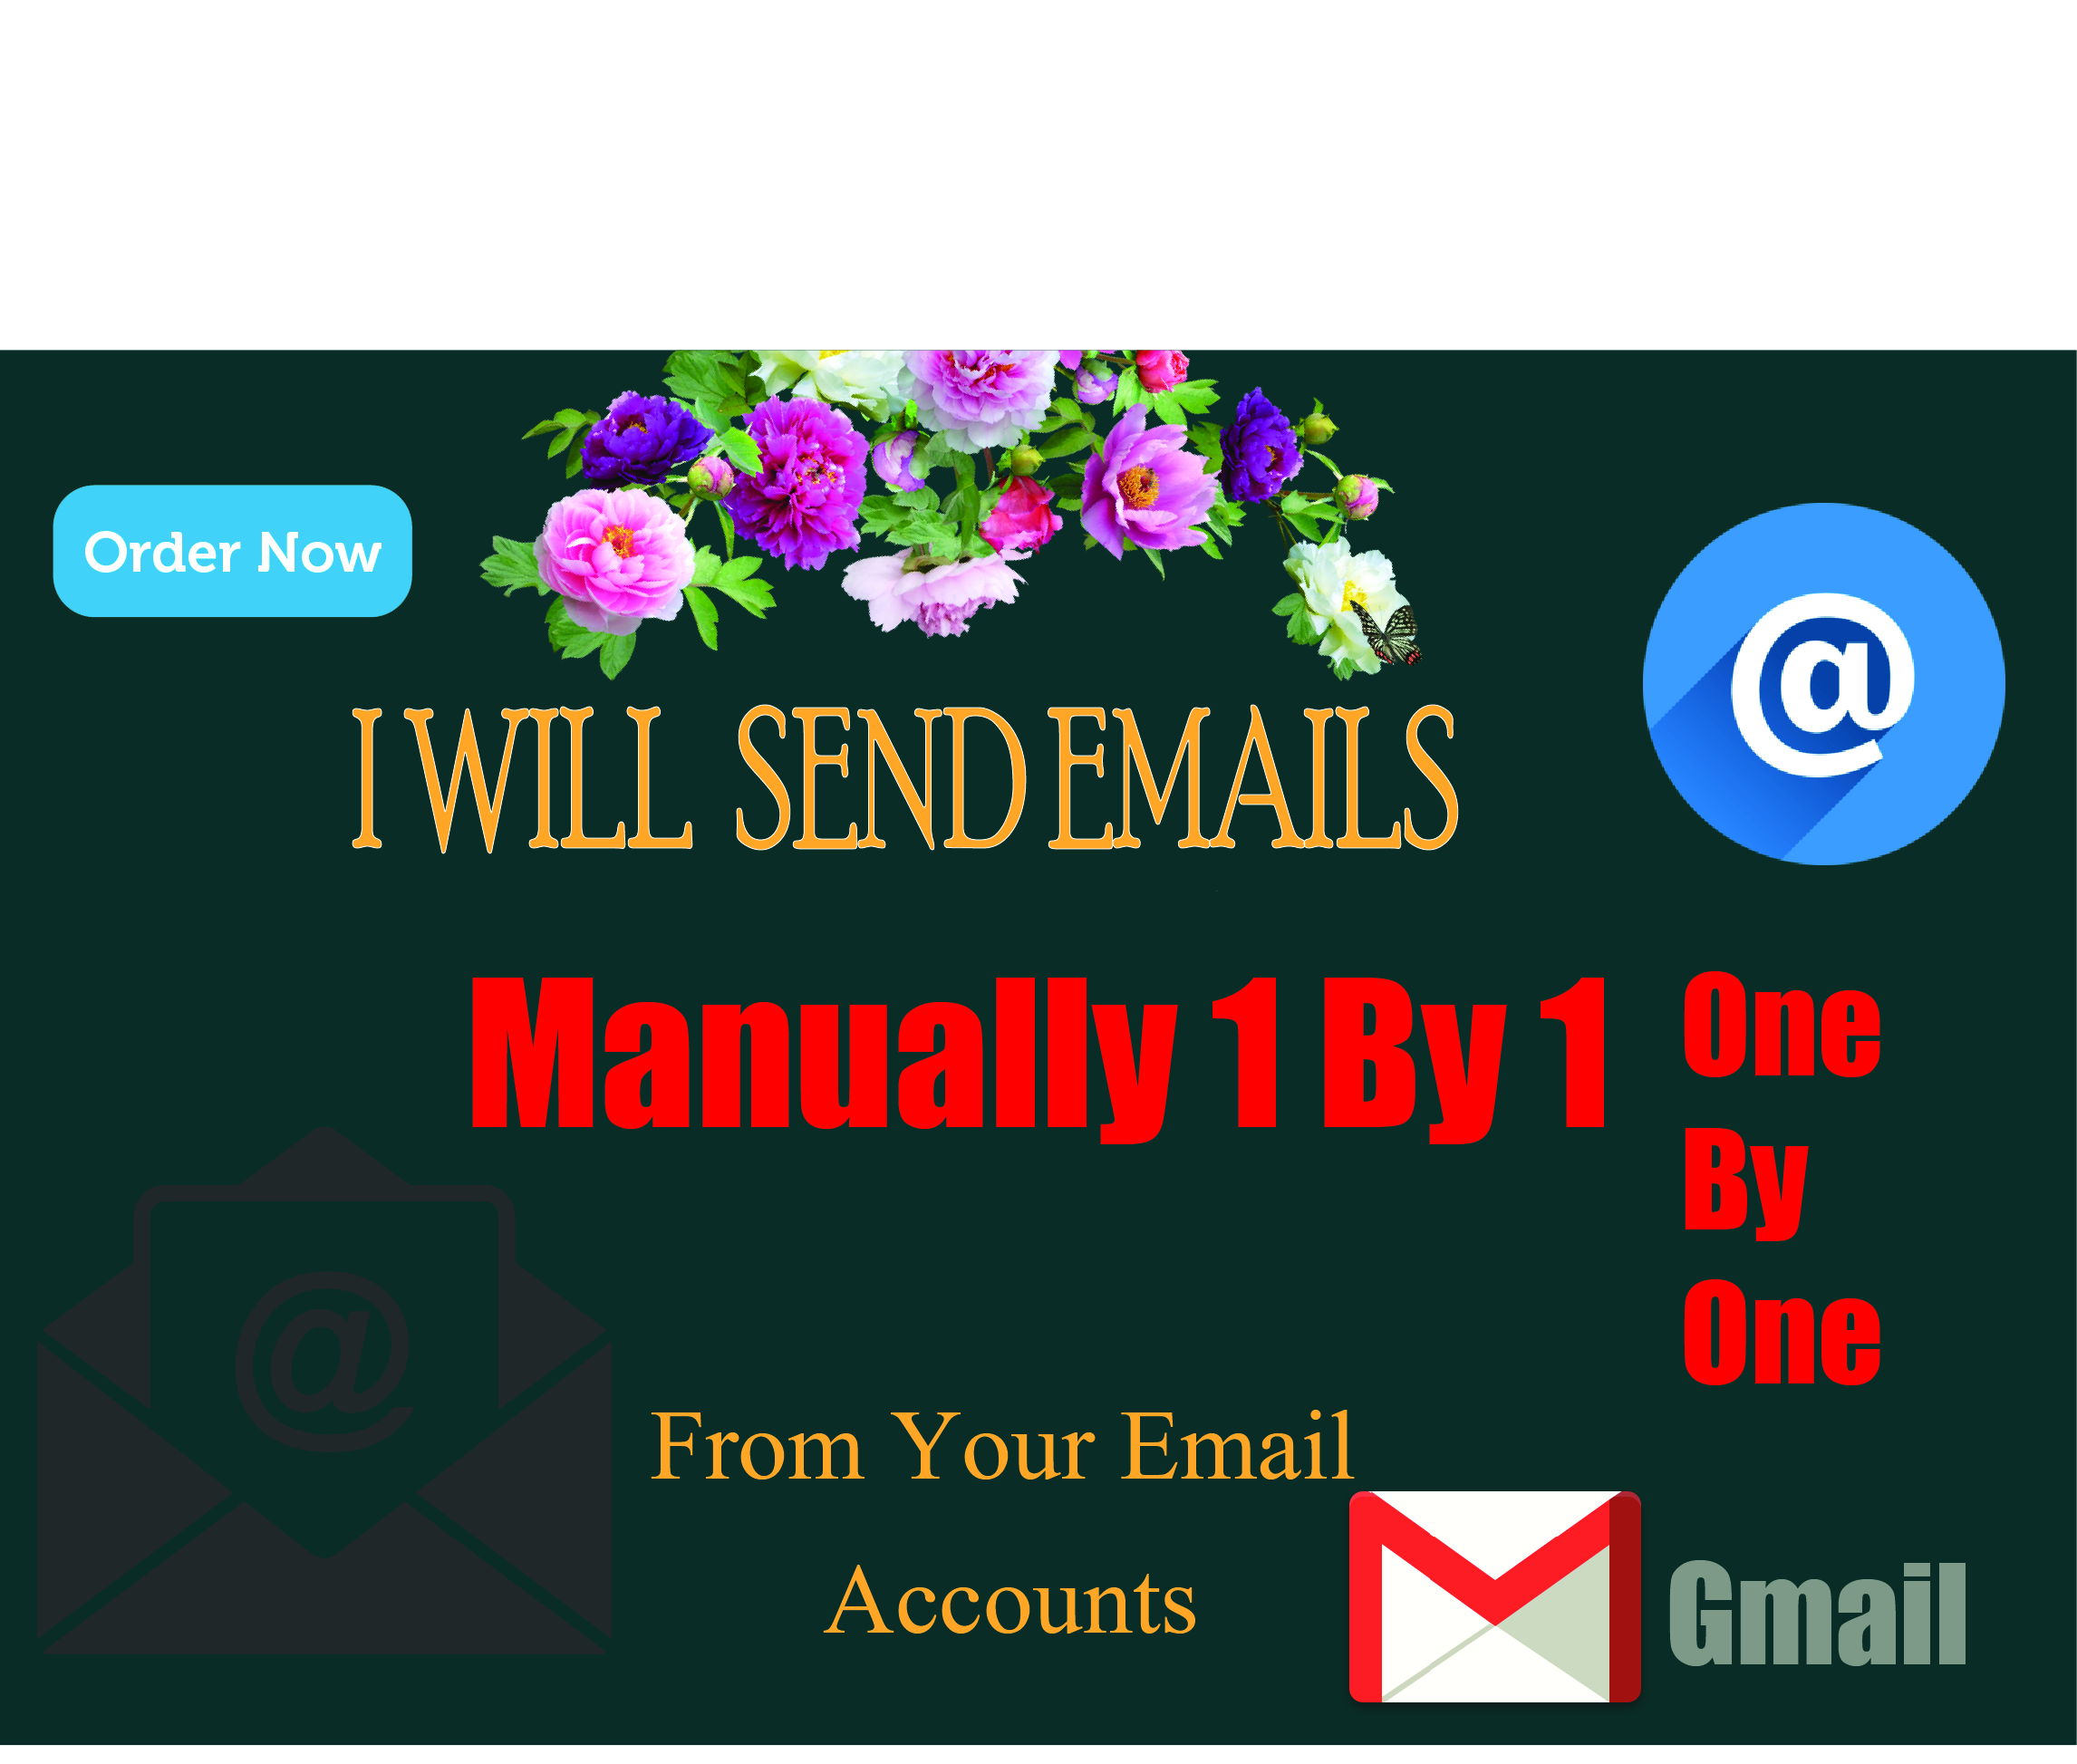 I WILL SEND EMAILS ONE BY ONE FOR YOU